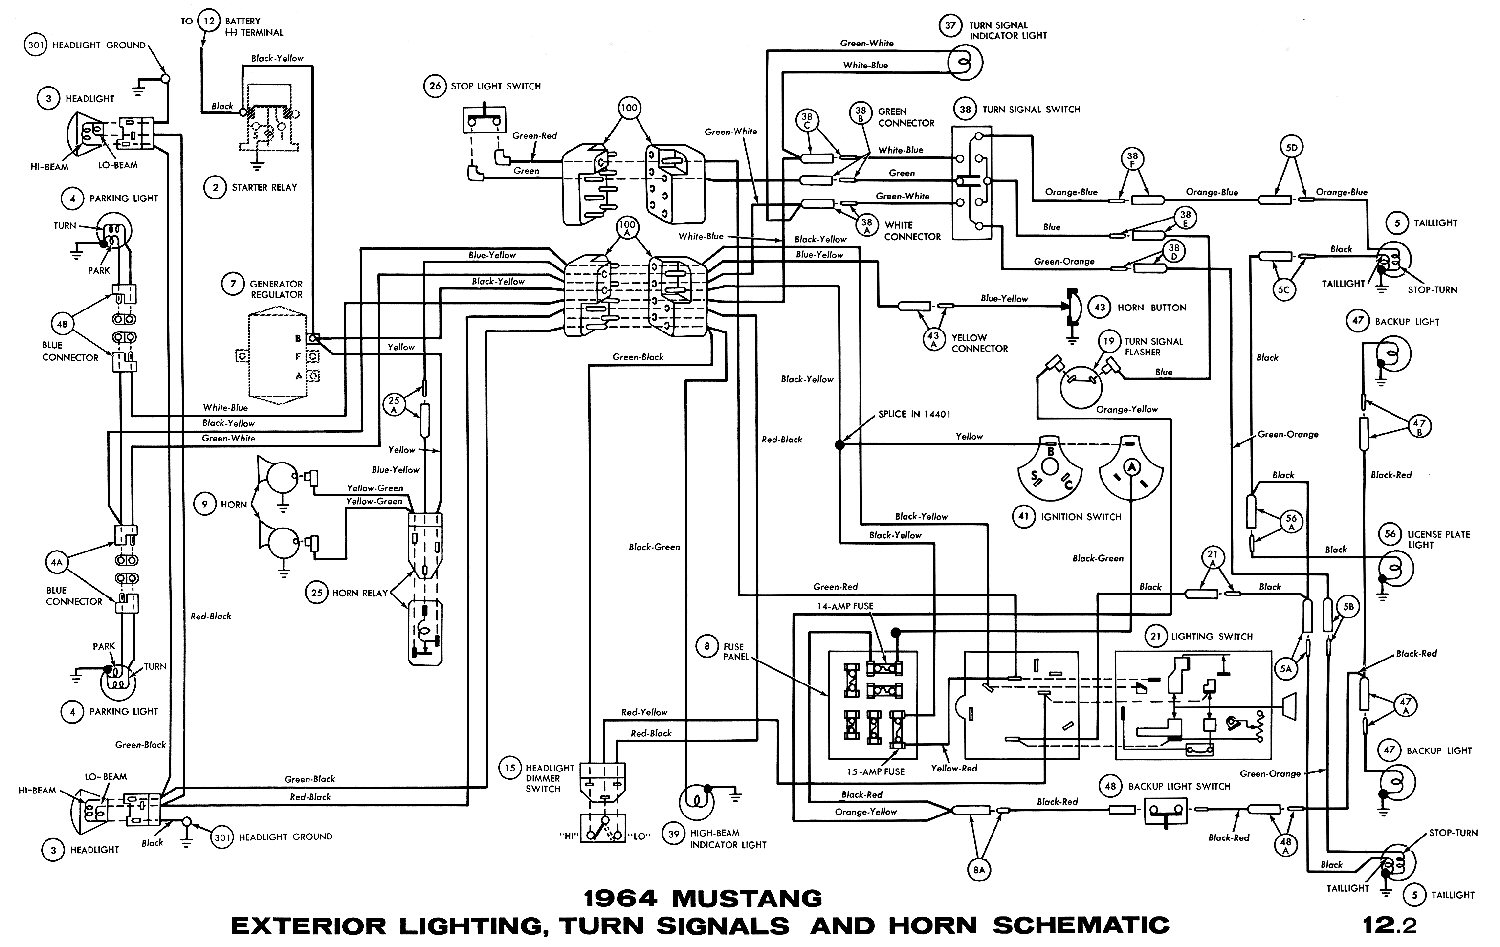 1964i 1964 mustang wiring diagrams average joe restoration 1968 mustang turn signal wiring diagram at beritabola.co